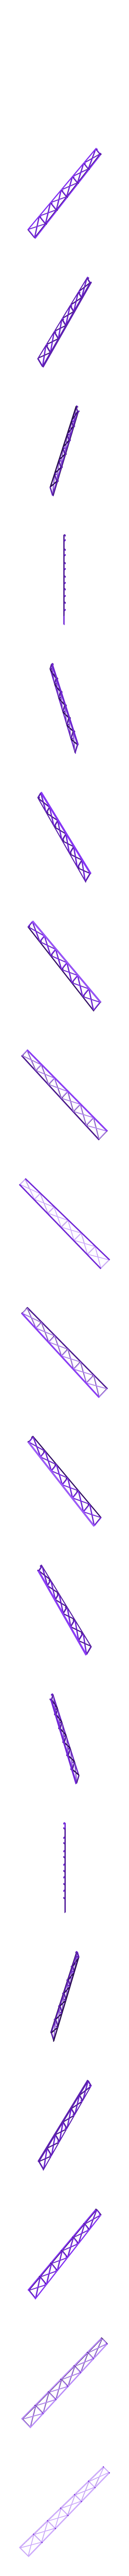 Tower_Segment_1_with_Conduit_Attachments.stl Download free STL file HO Scale 68' Yard Light Tower • 3D printer model, kabrumble